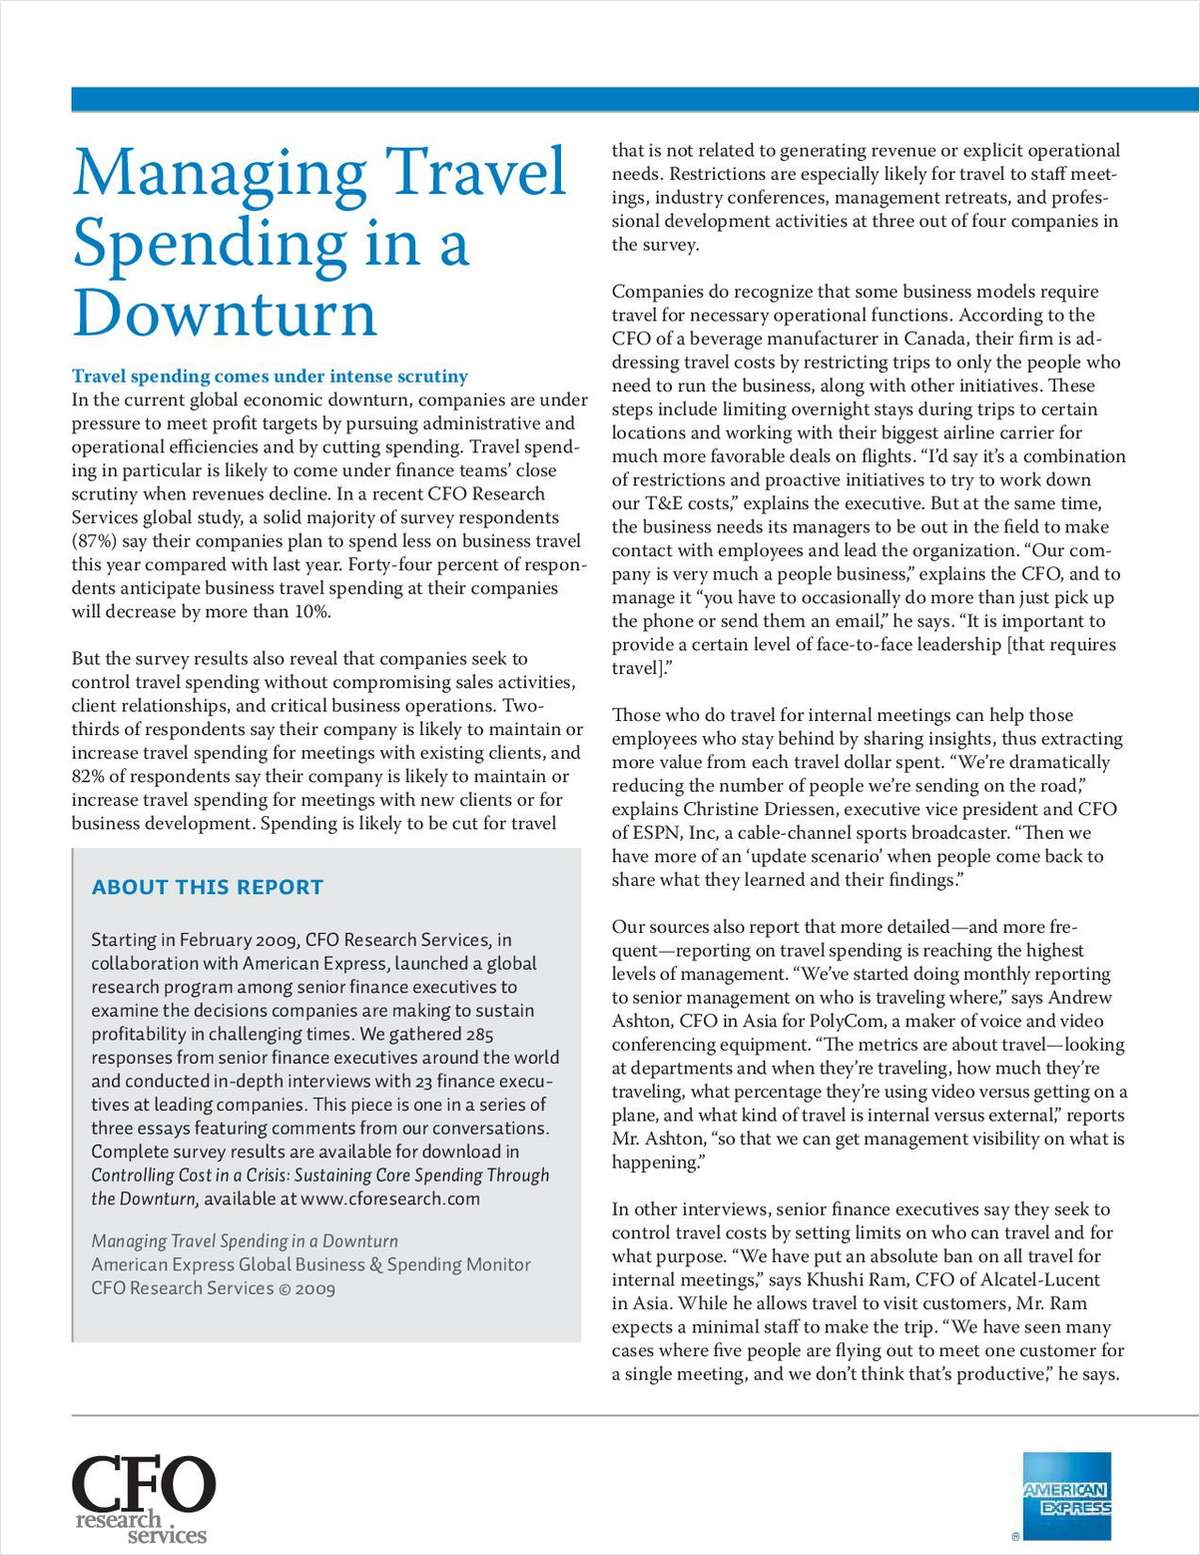 Managing Travel Spending in a Downturn, Free American